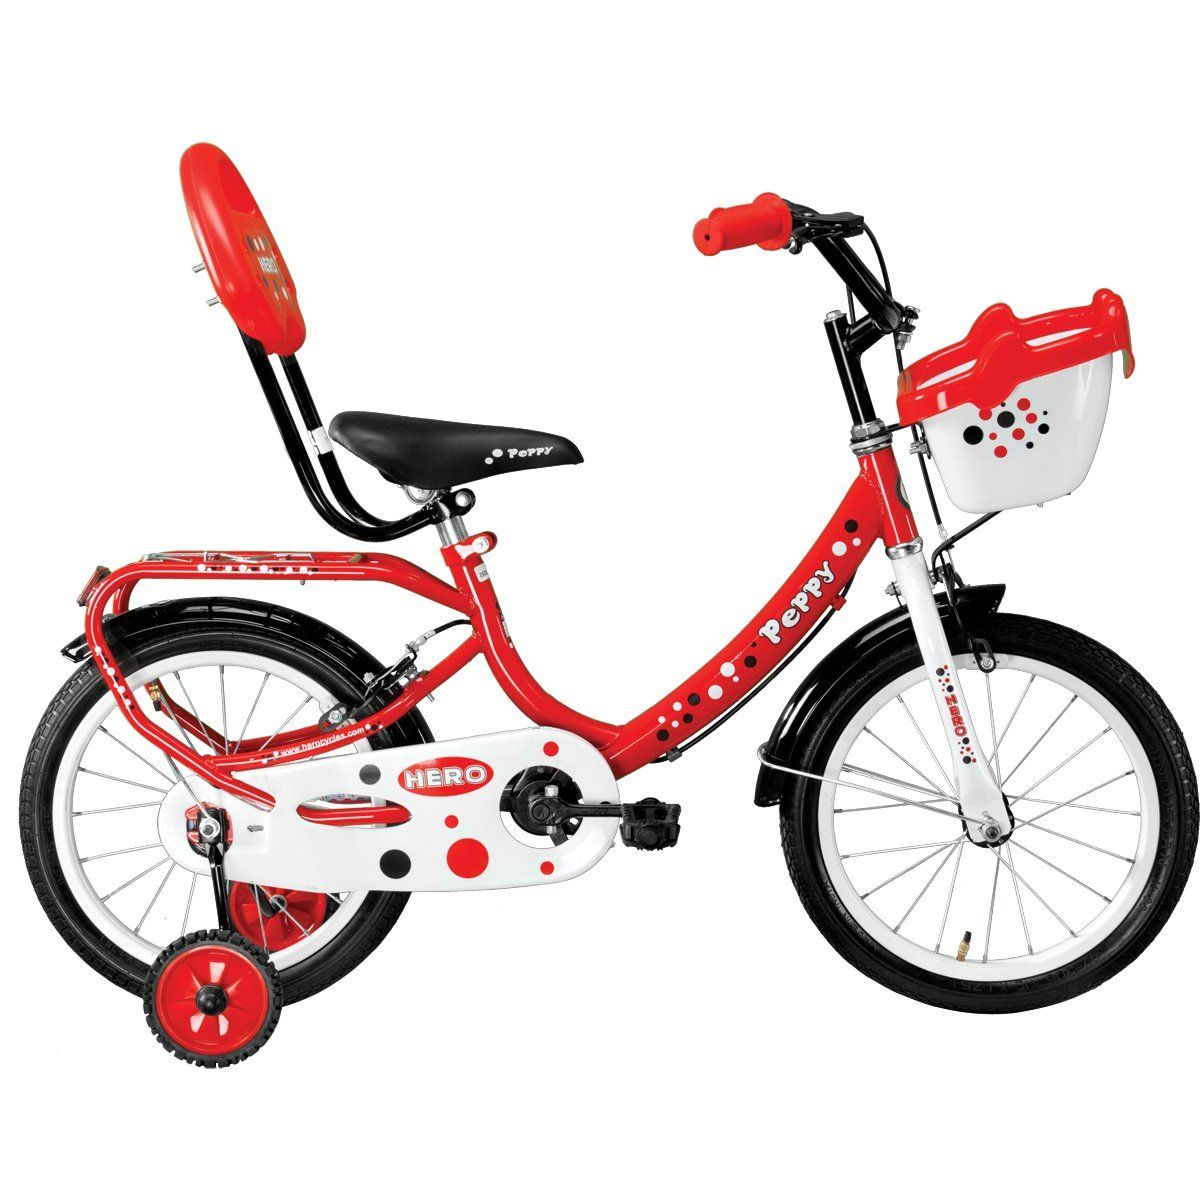 Best Baby Bicycle for 3 4 5 6 year old kids Hero Peppy 16T Junior Bike